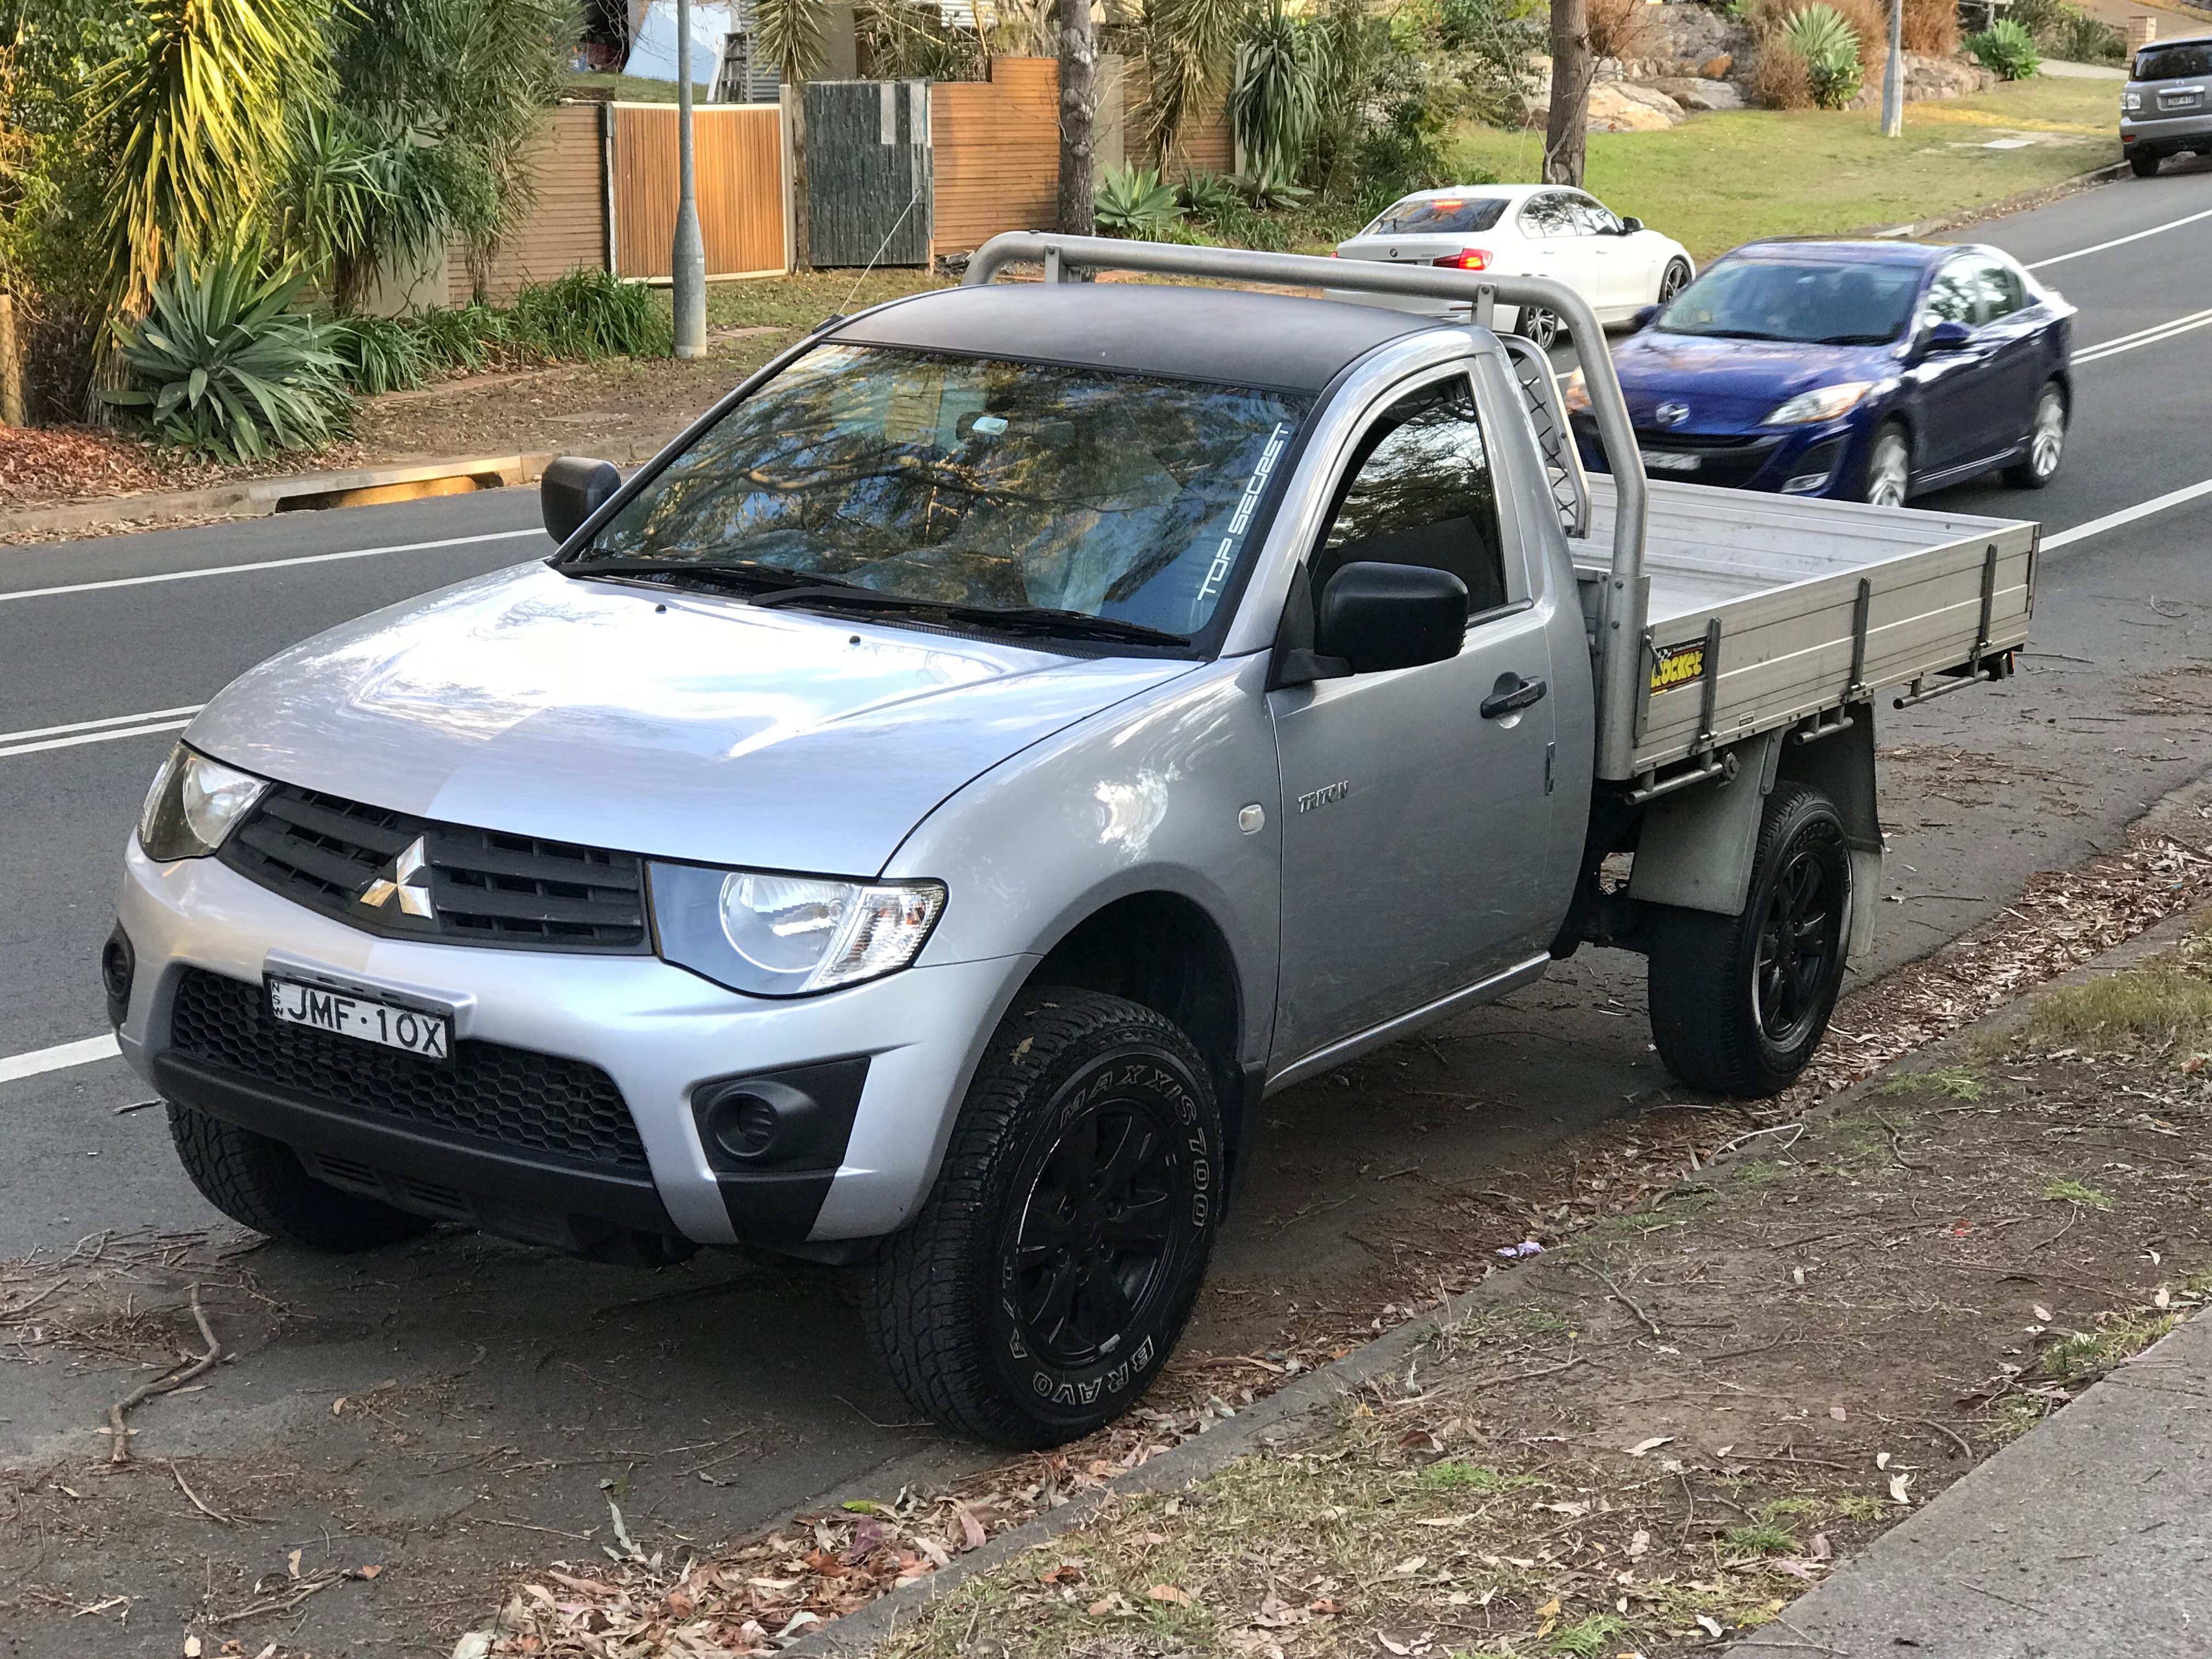 Picture of Jeffry's 2014 Mitsubishi Tritón